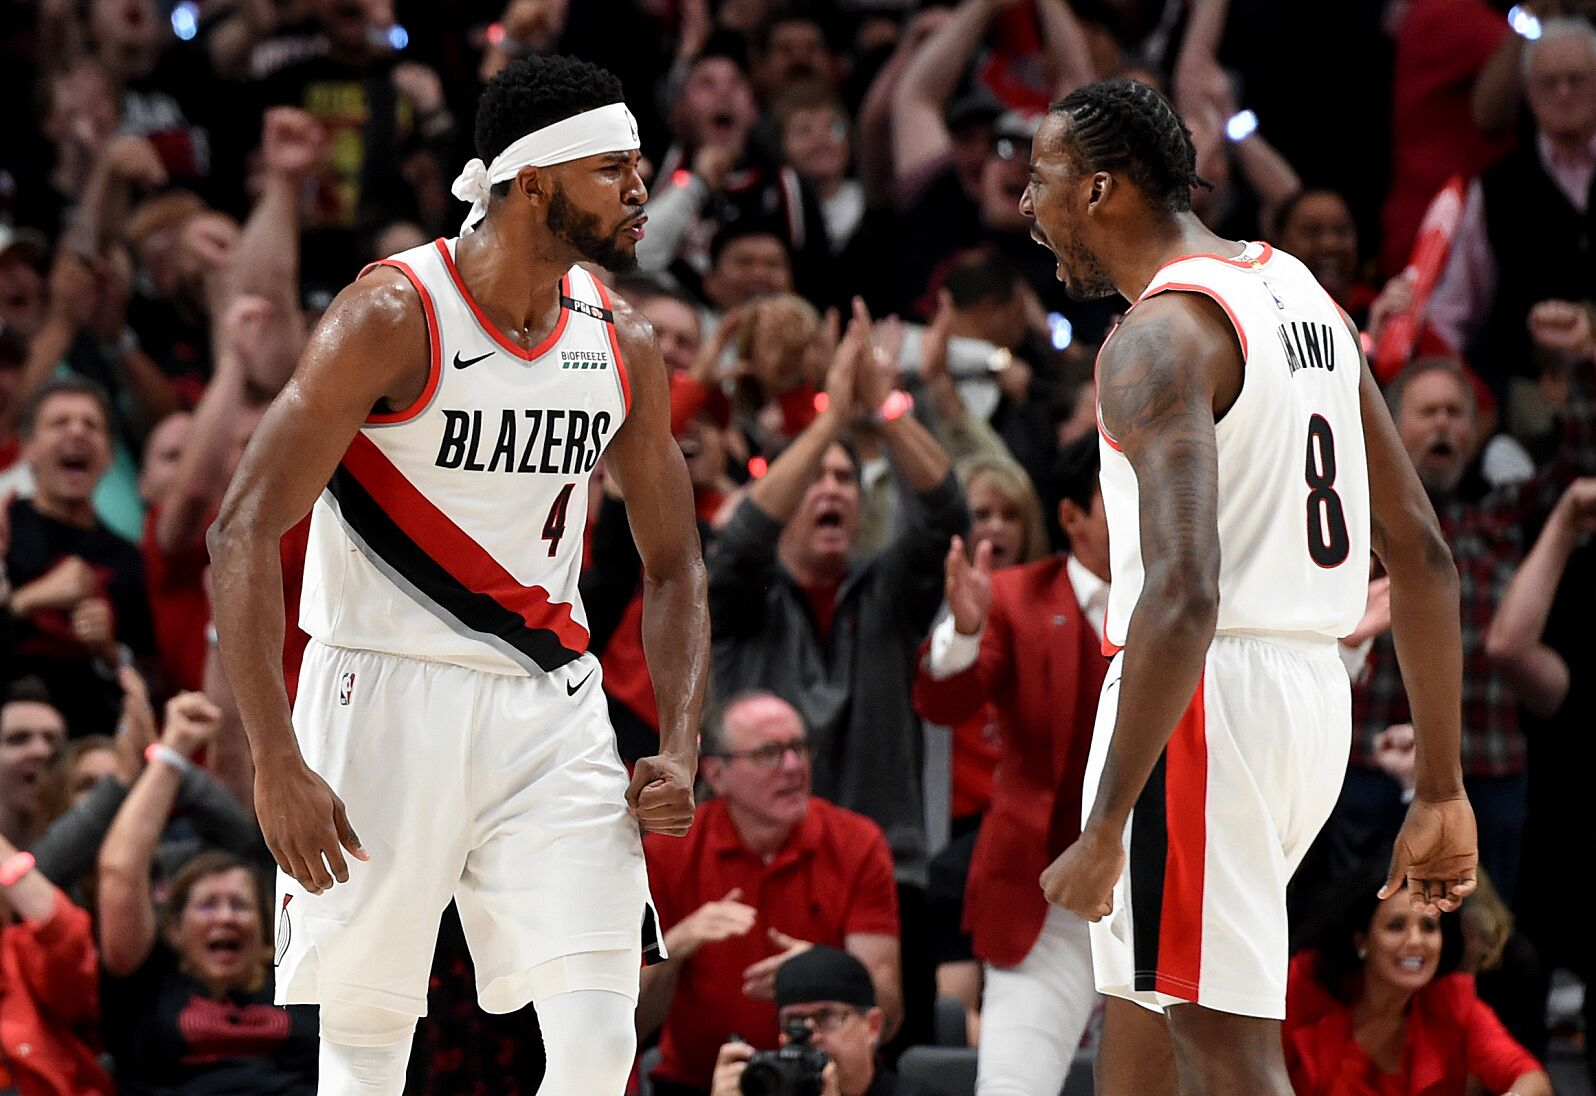 Potential draft day trades for the Portland Trail Blazers